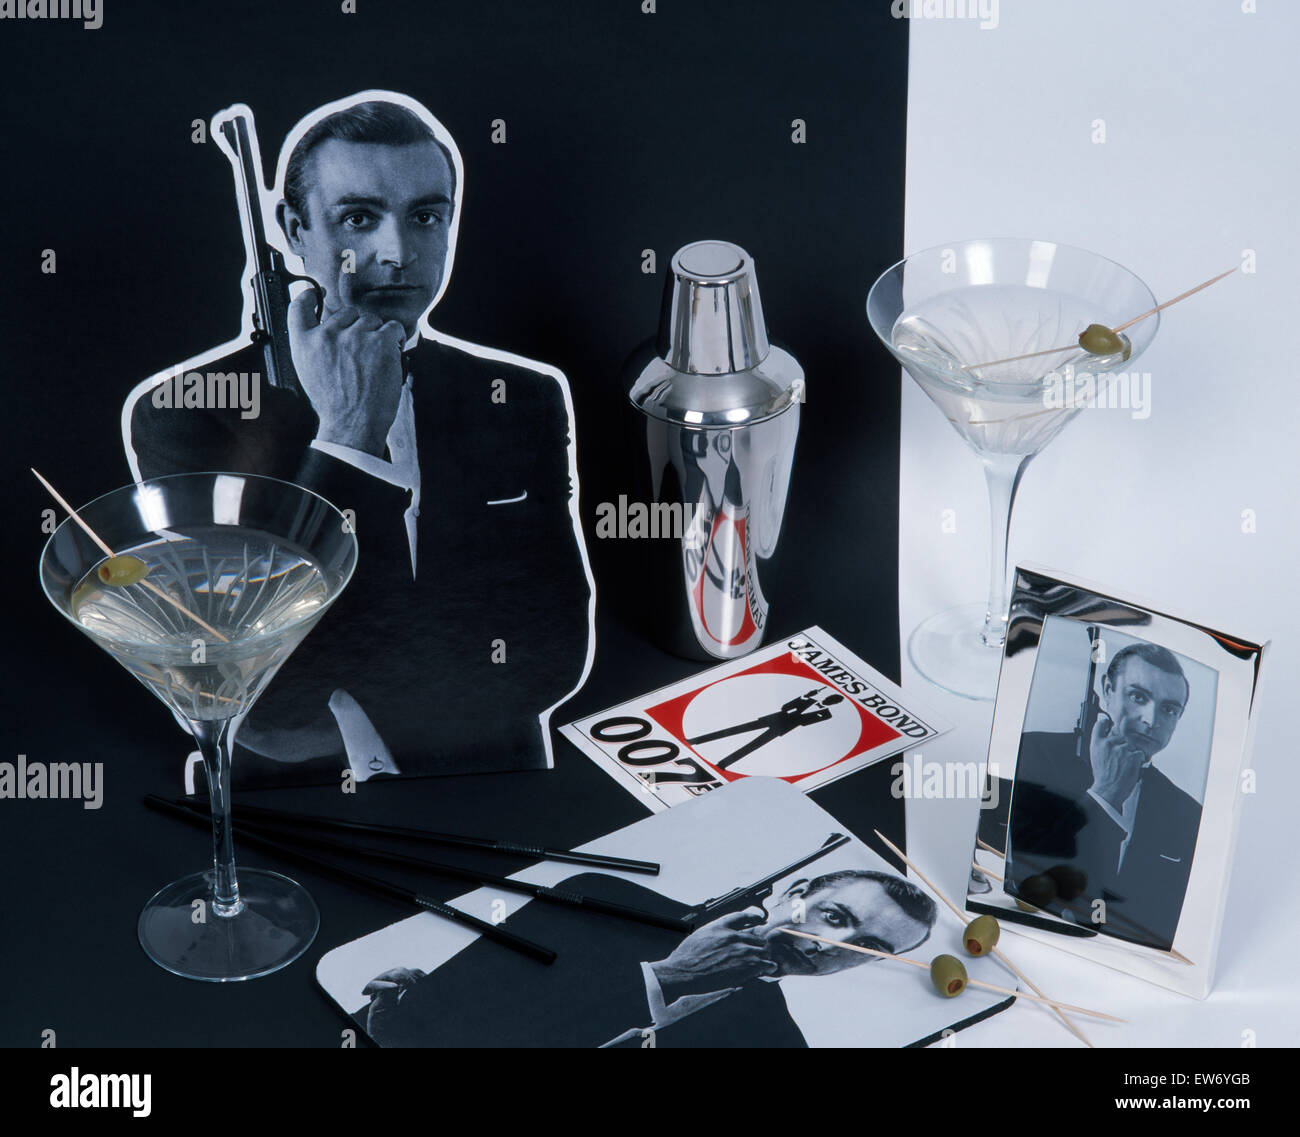 Dry Martinis in cocktail glasses with a chrome cocktail shaker in a James Bond themed tableau - Stock Image